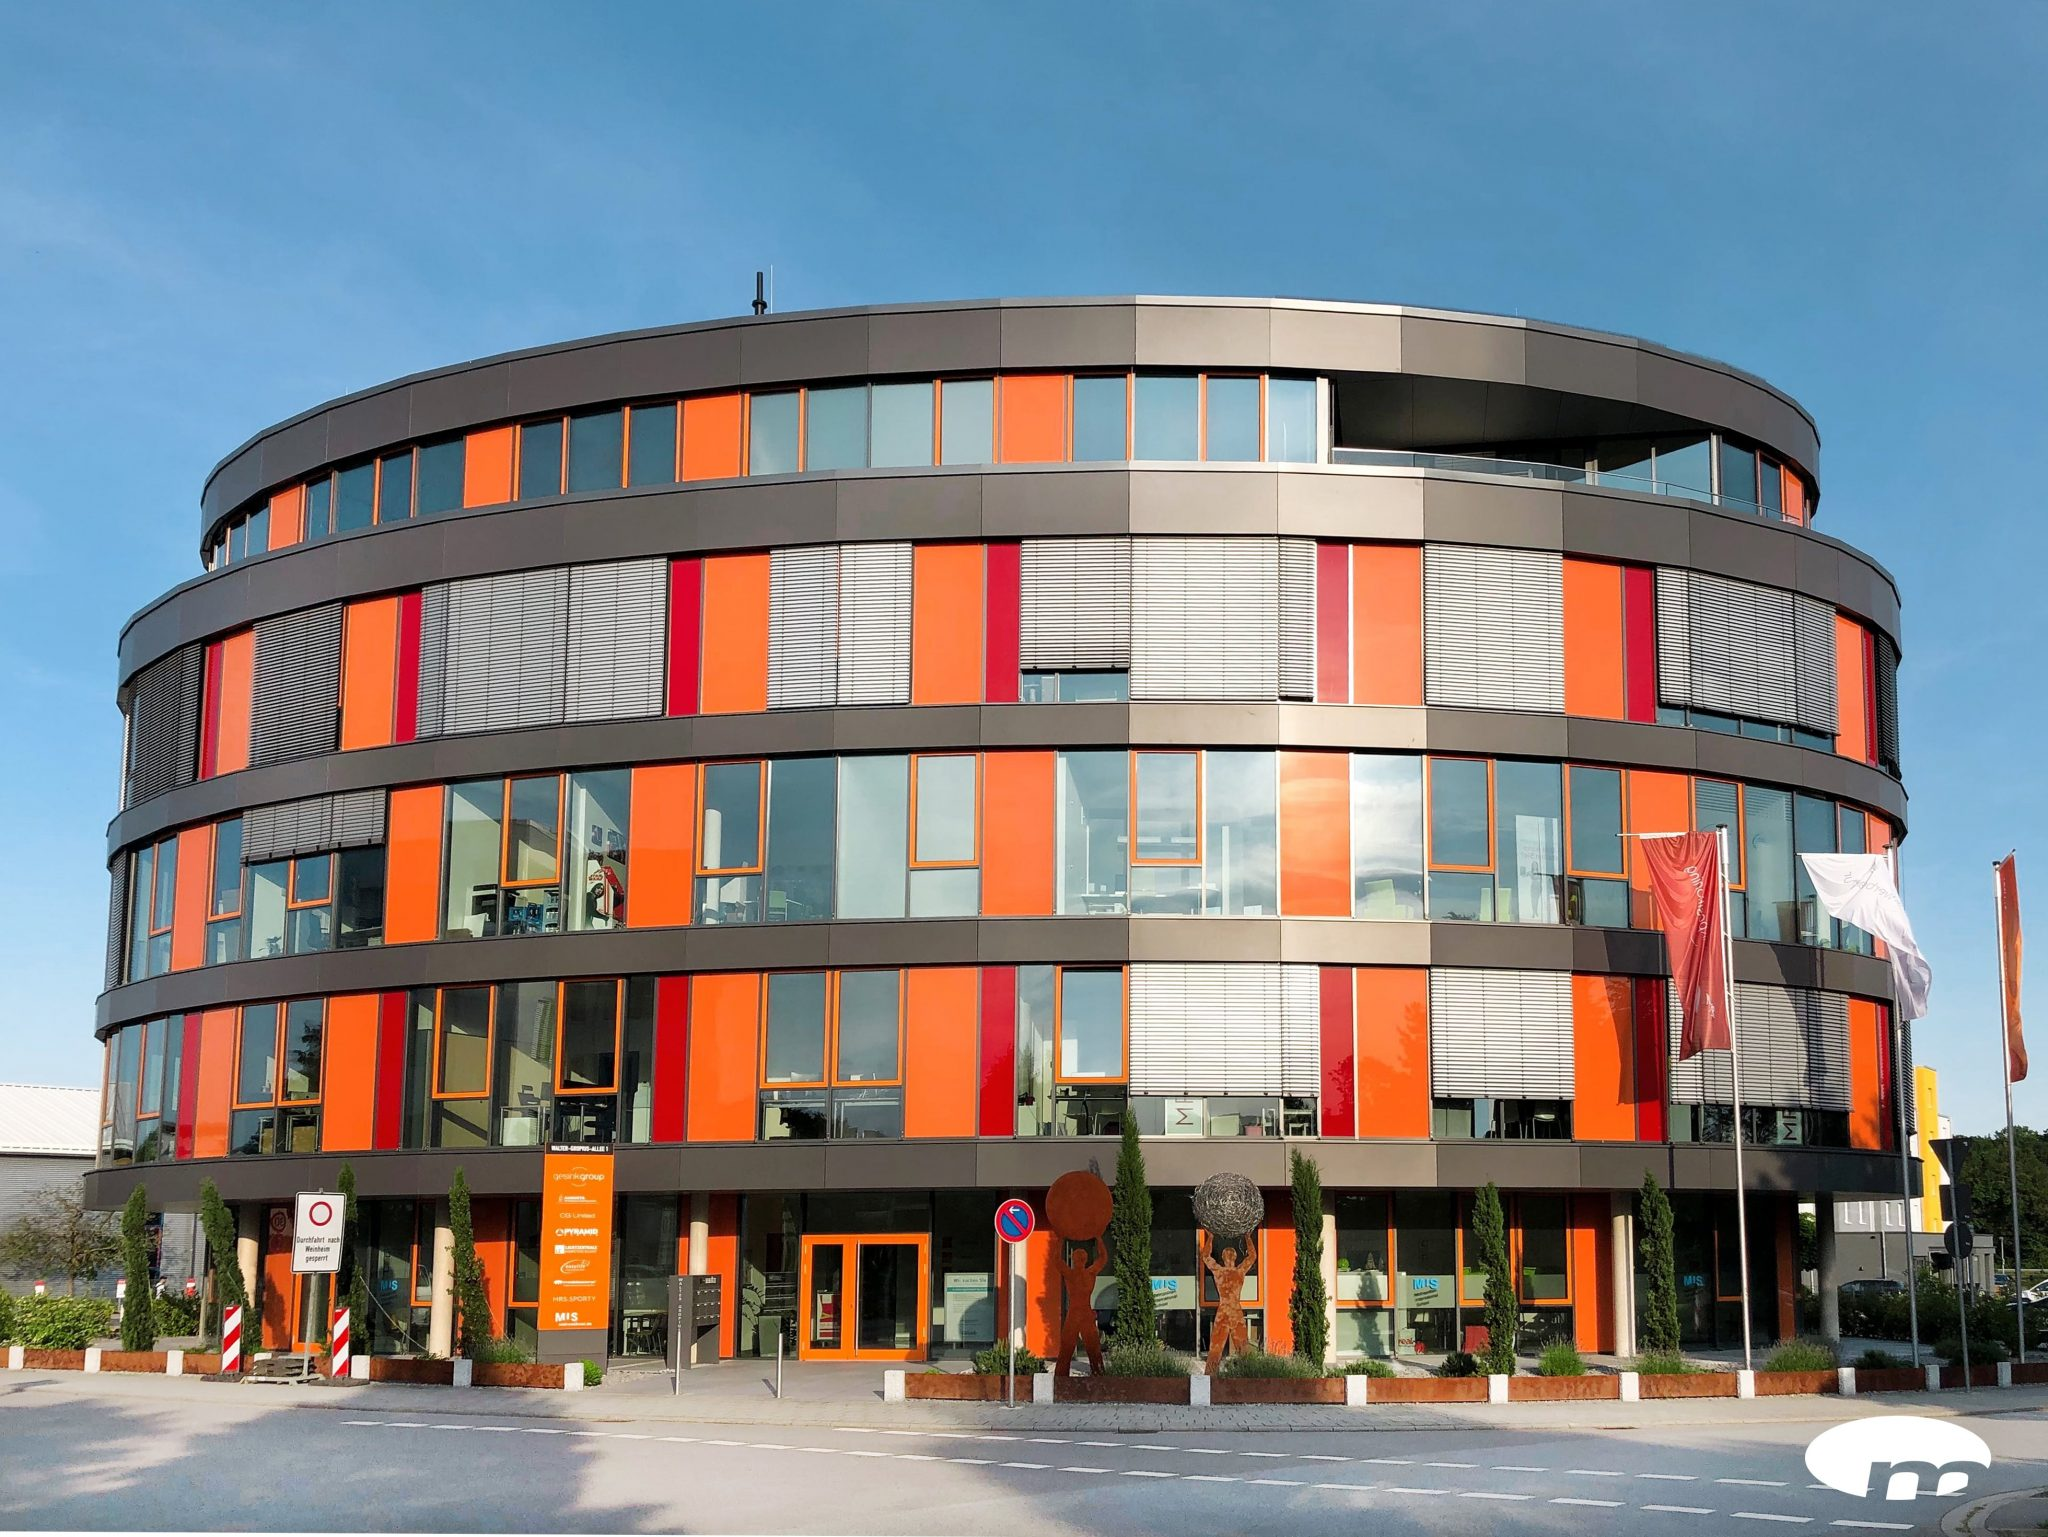 Mobizcorp headquarters in Viernheim - our new office location